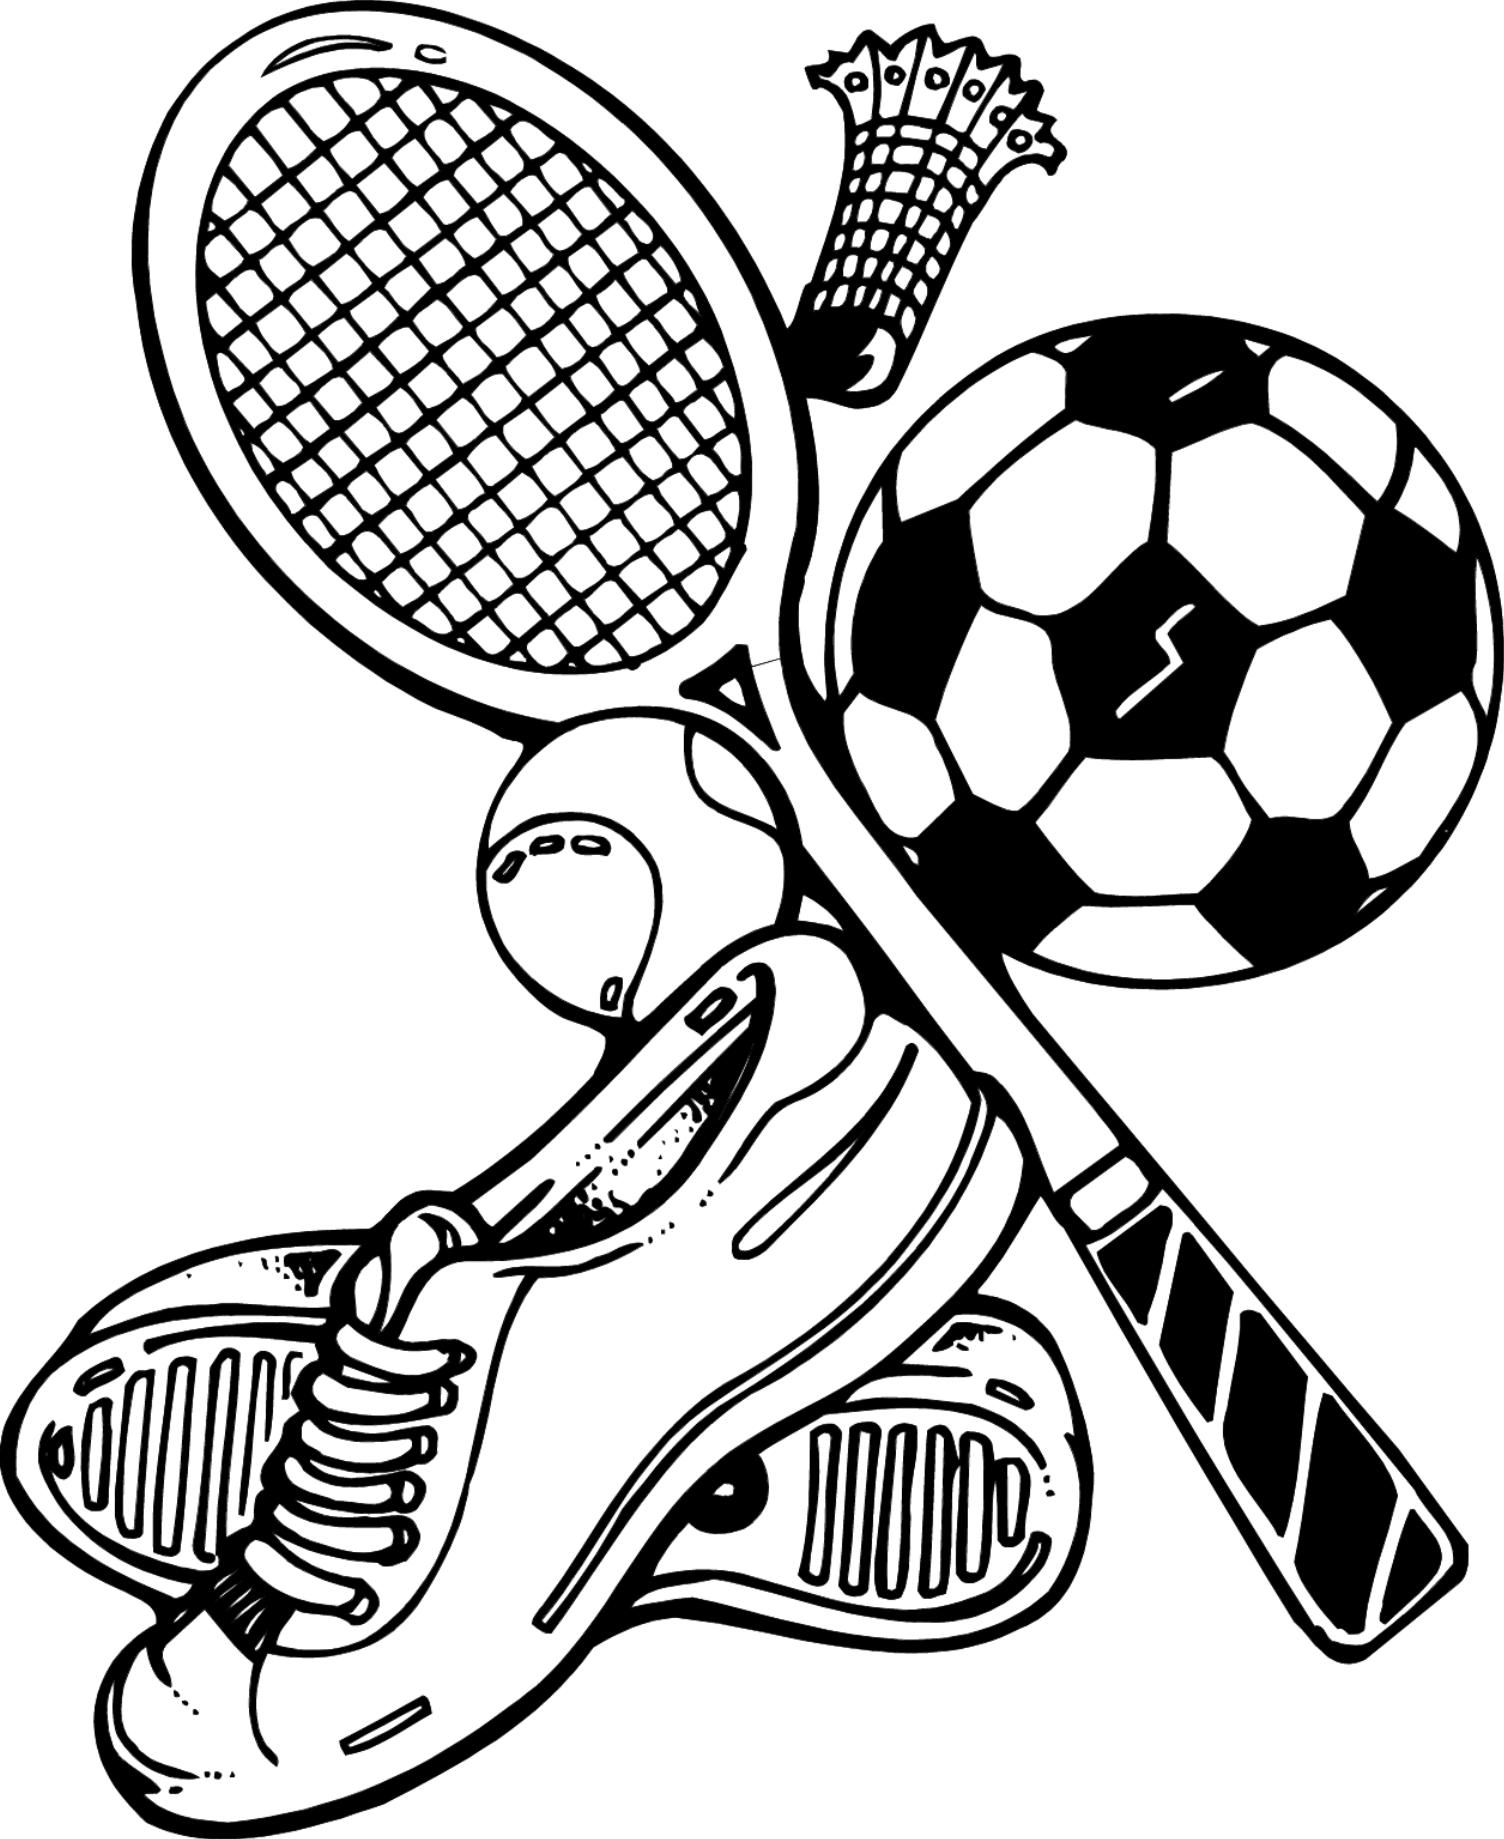 Free Images Of Sports Equipment Download Free Clip Art